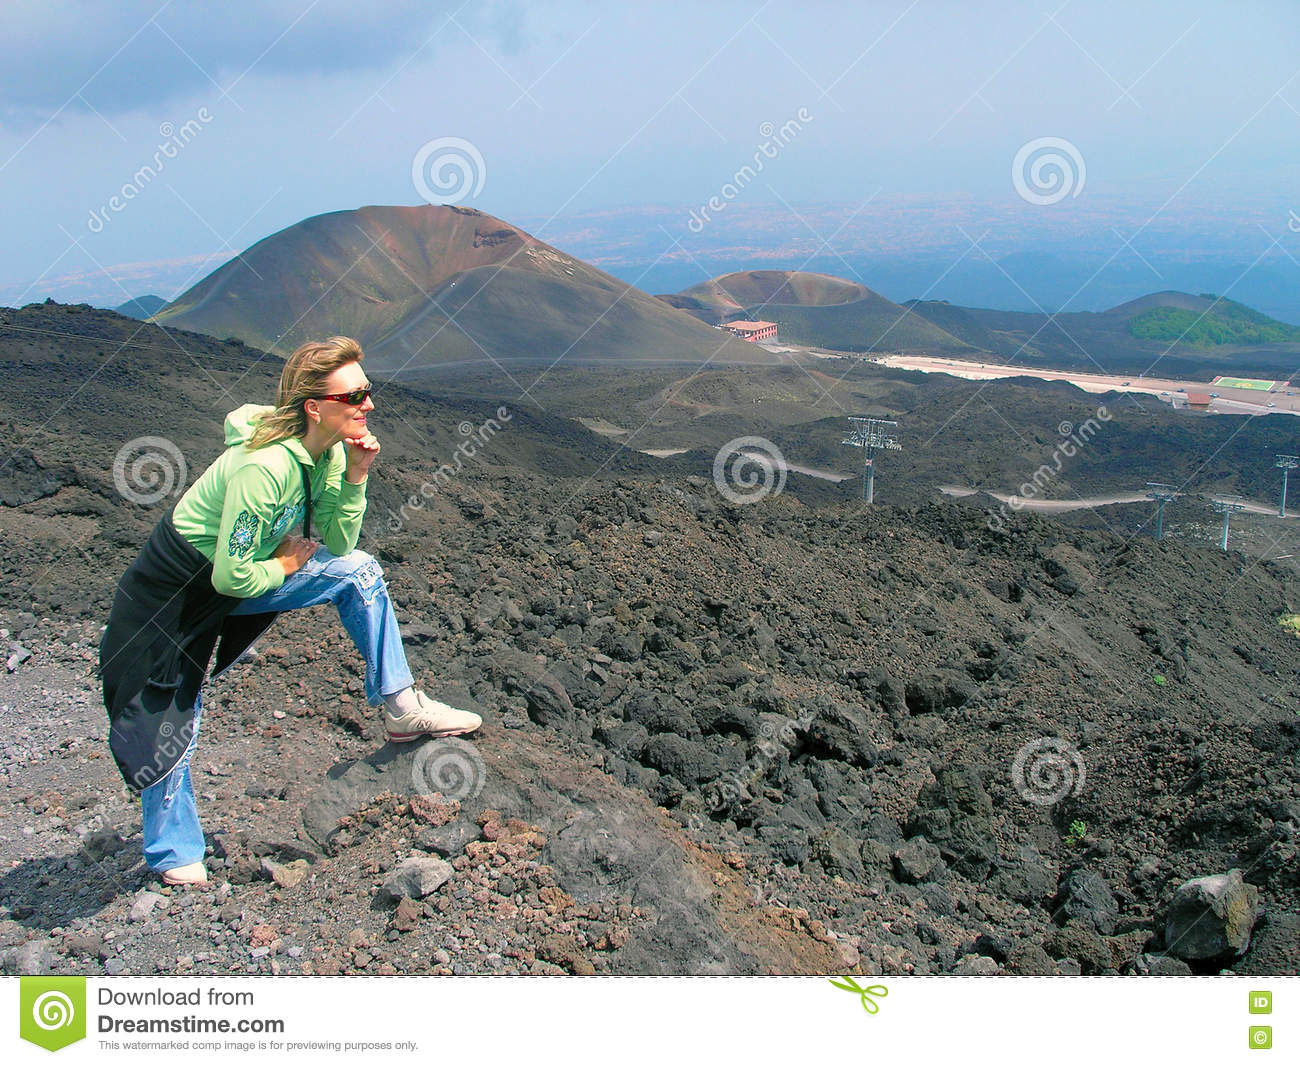 Among the craters of Etna.